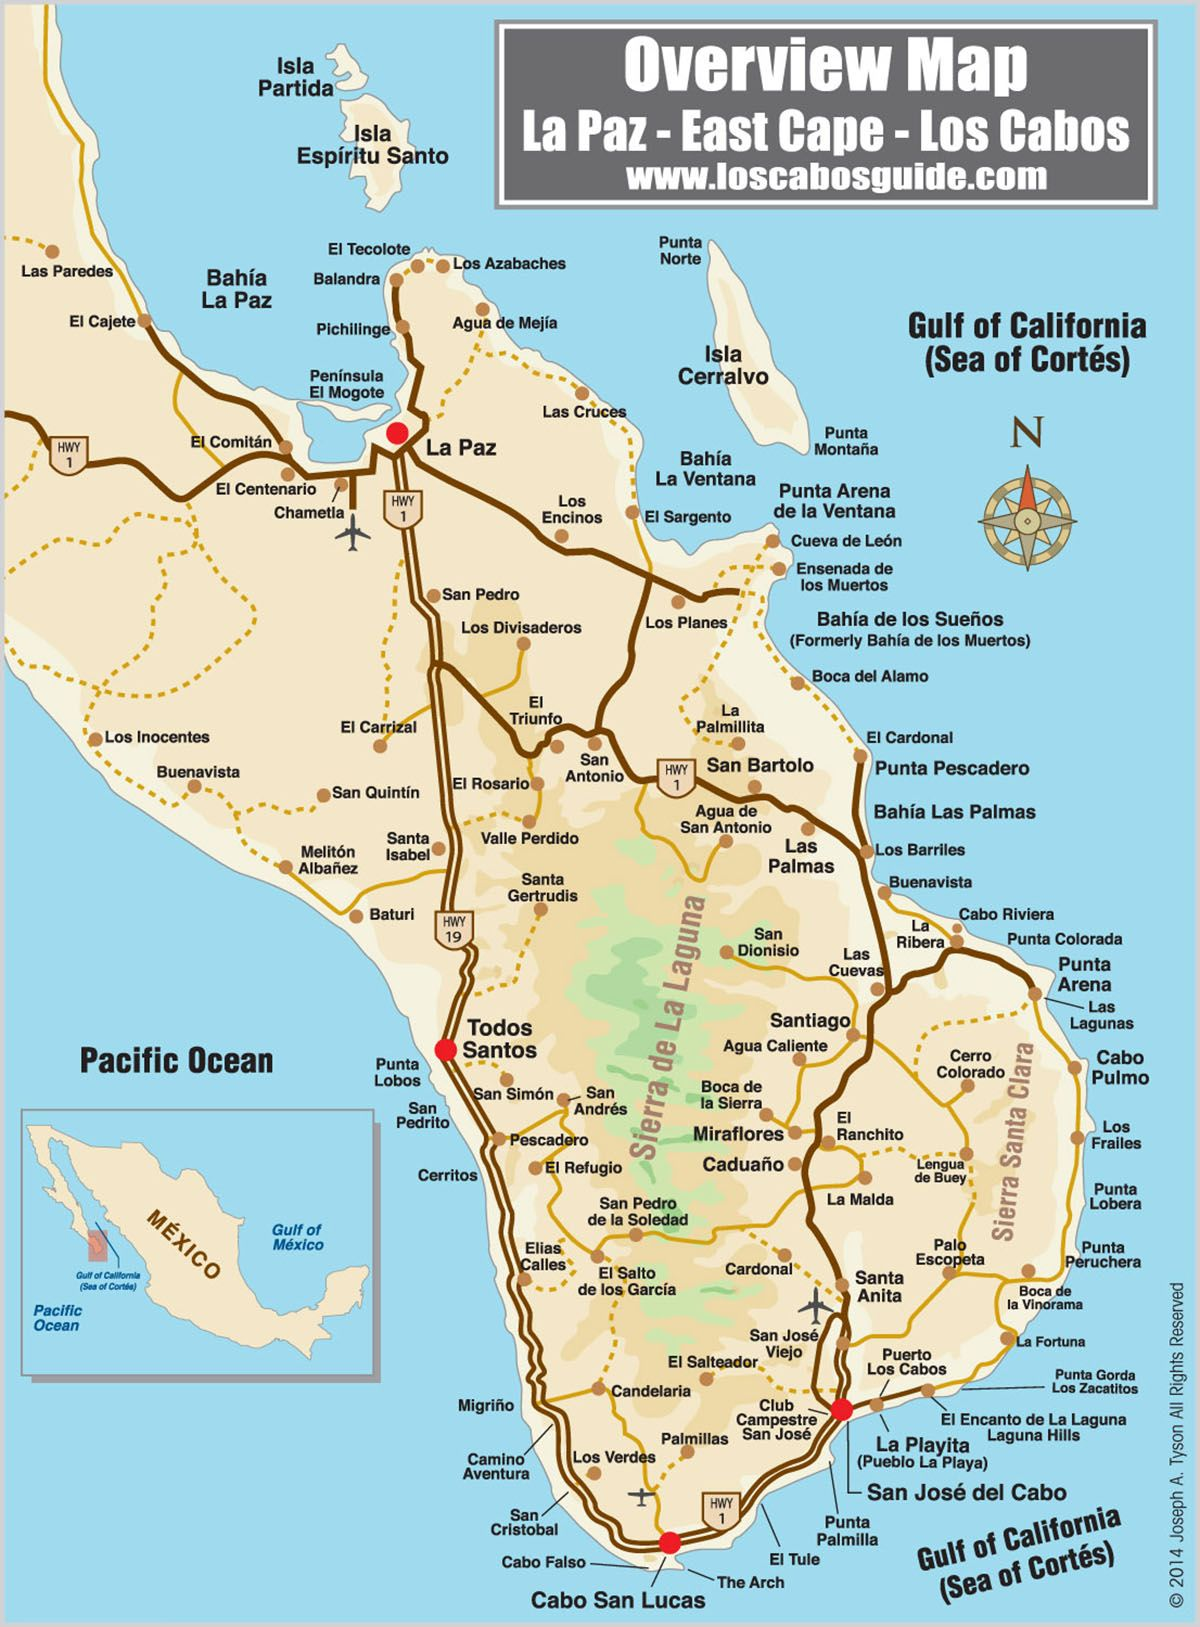 Overview Map La Paz East Cape Los Cabos Los Cabos Guide cabo